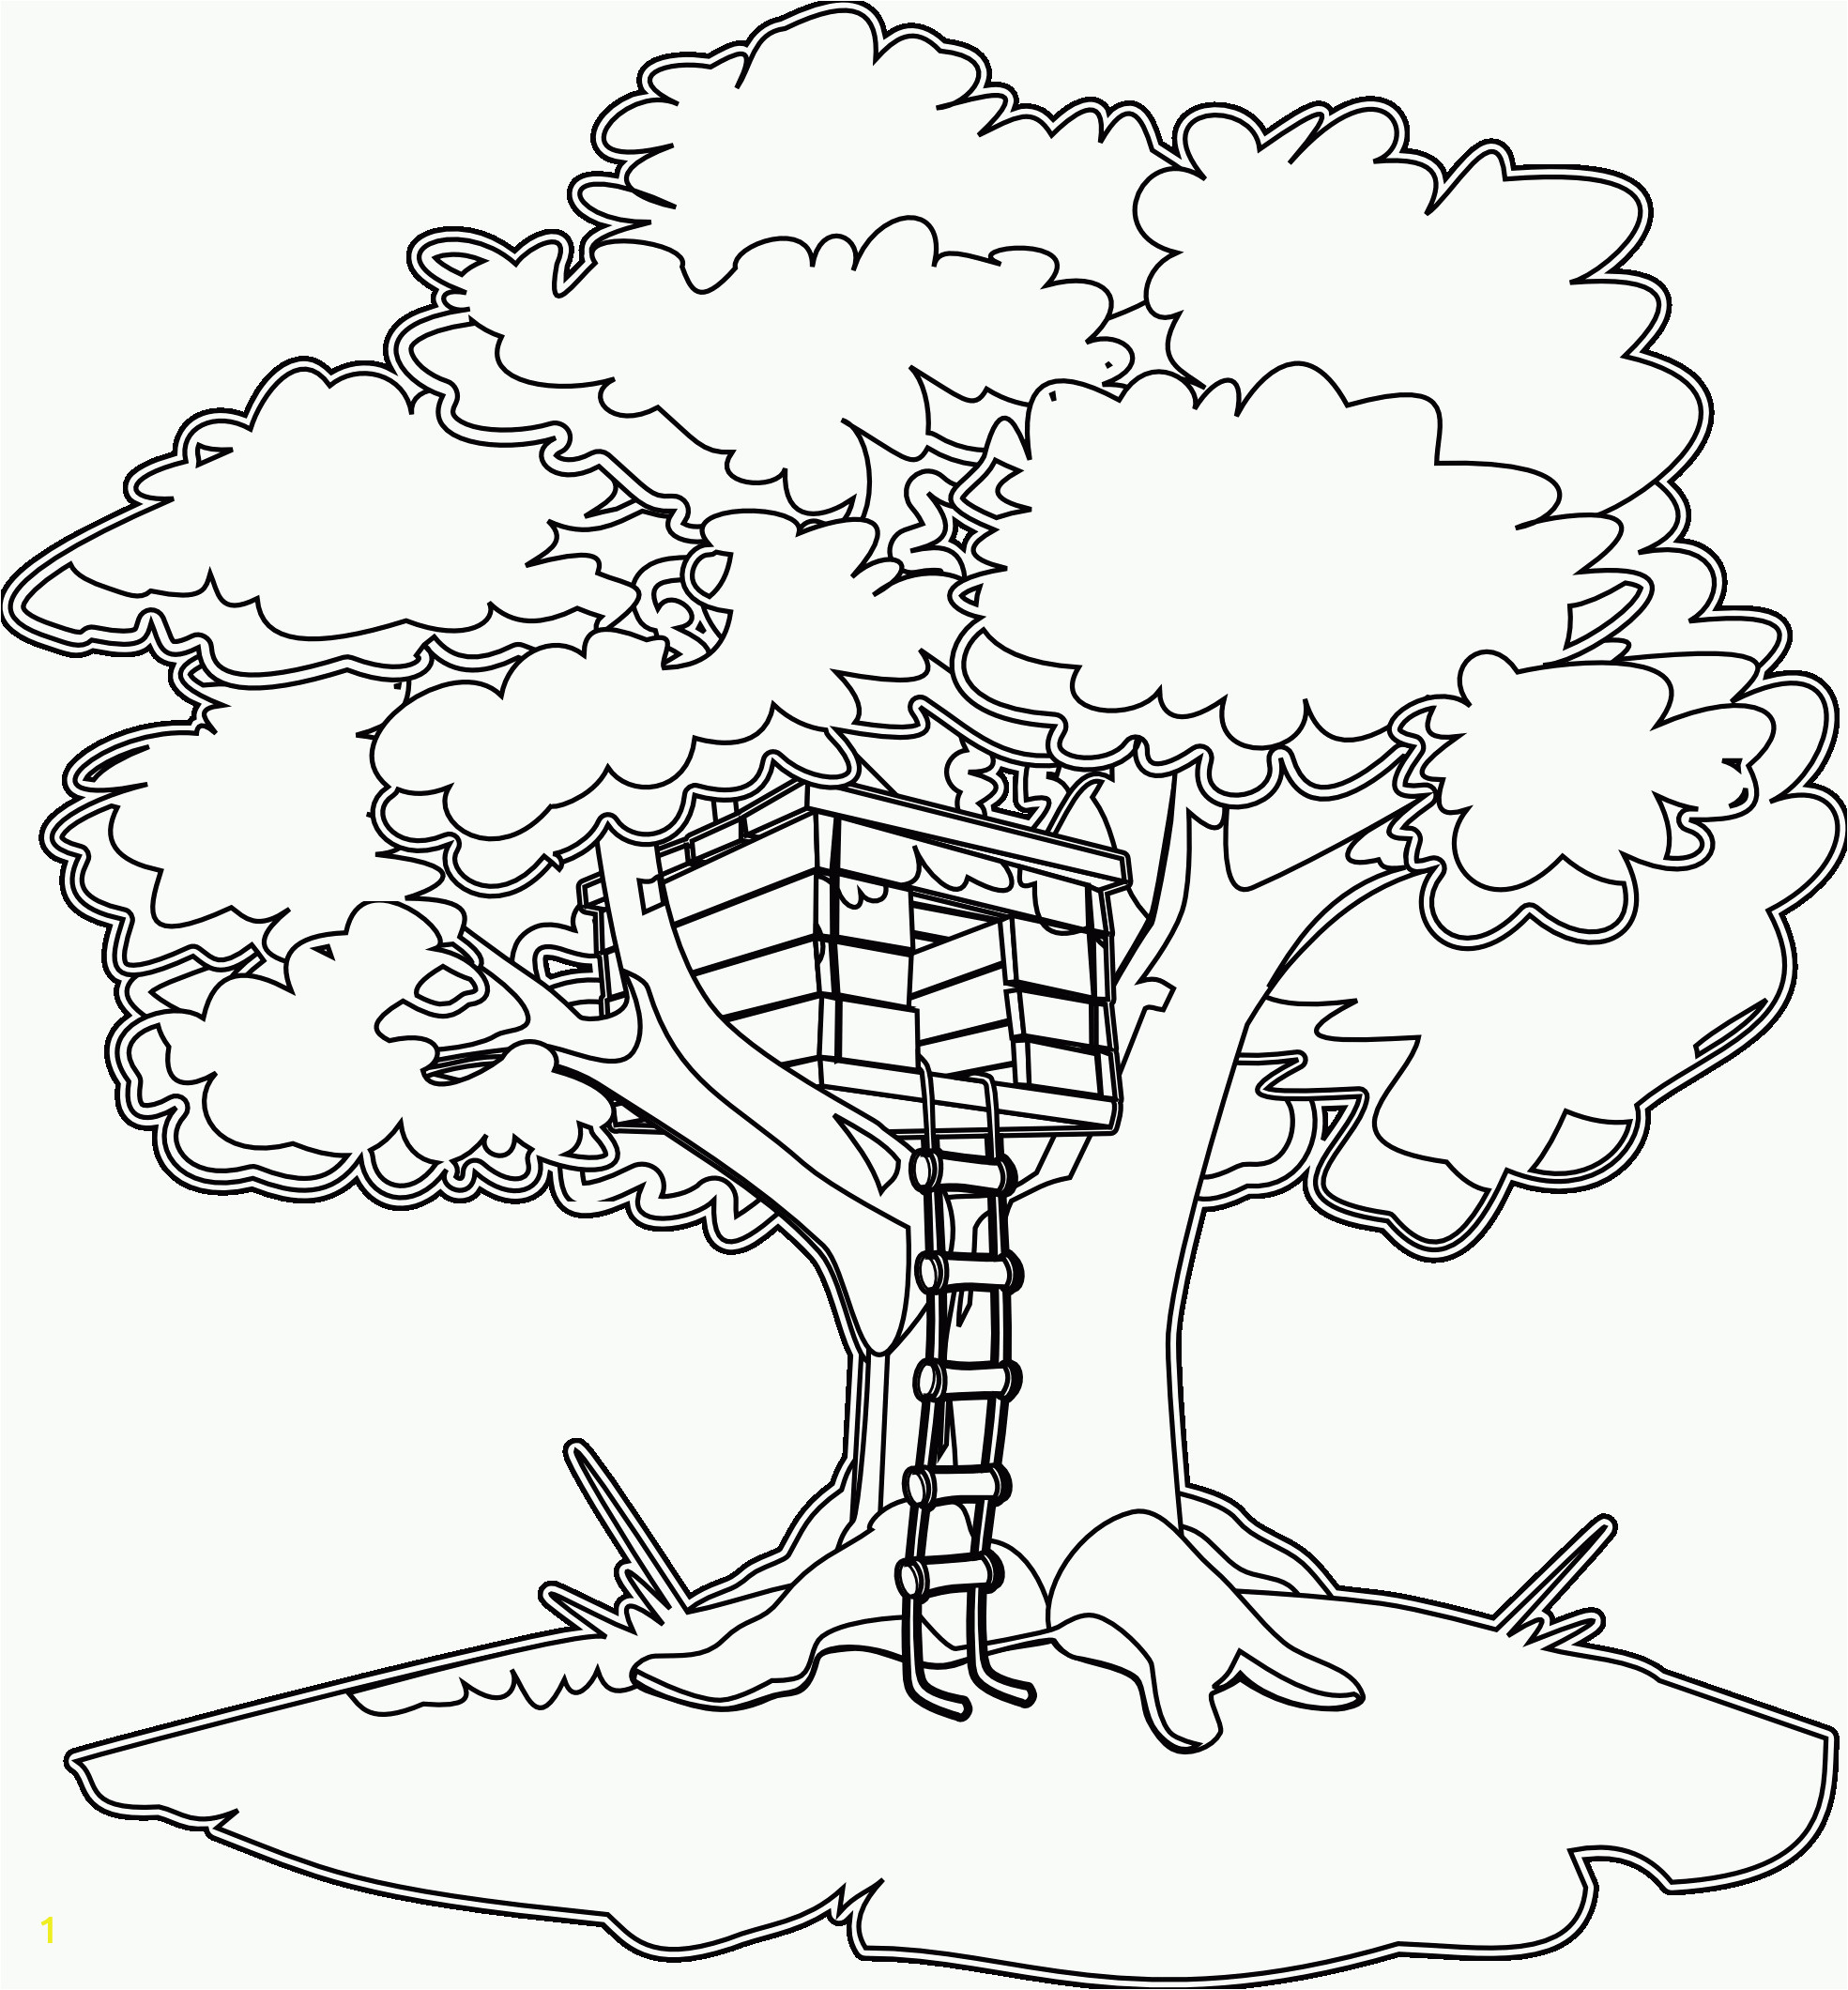 c dda1fcfd432ea12d5c9f235 free tree house coloring pages colouring pages 1969 2120